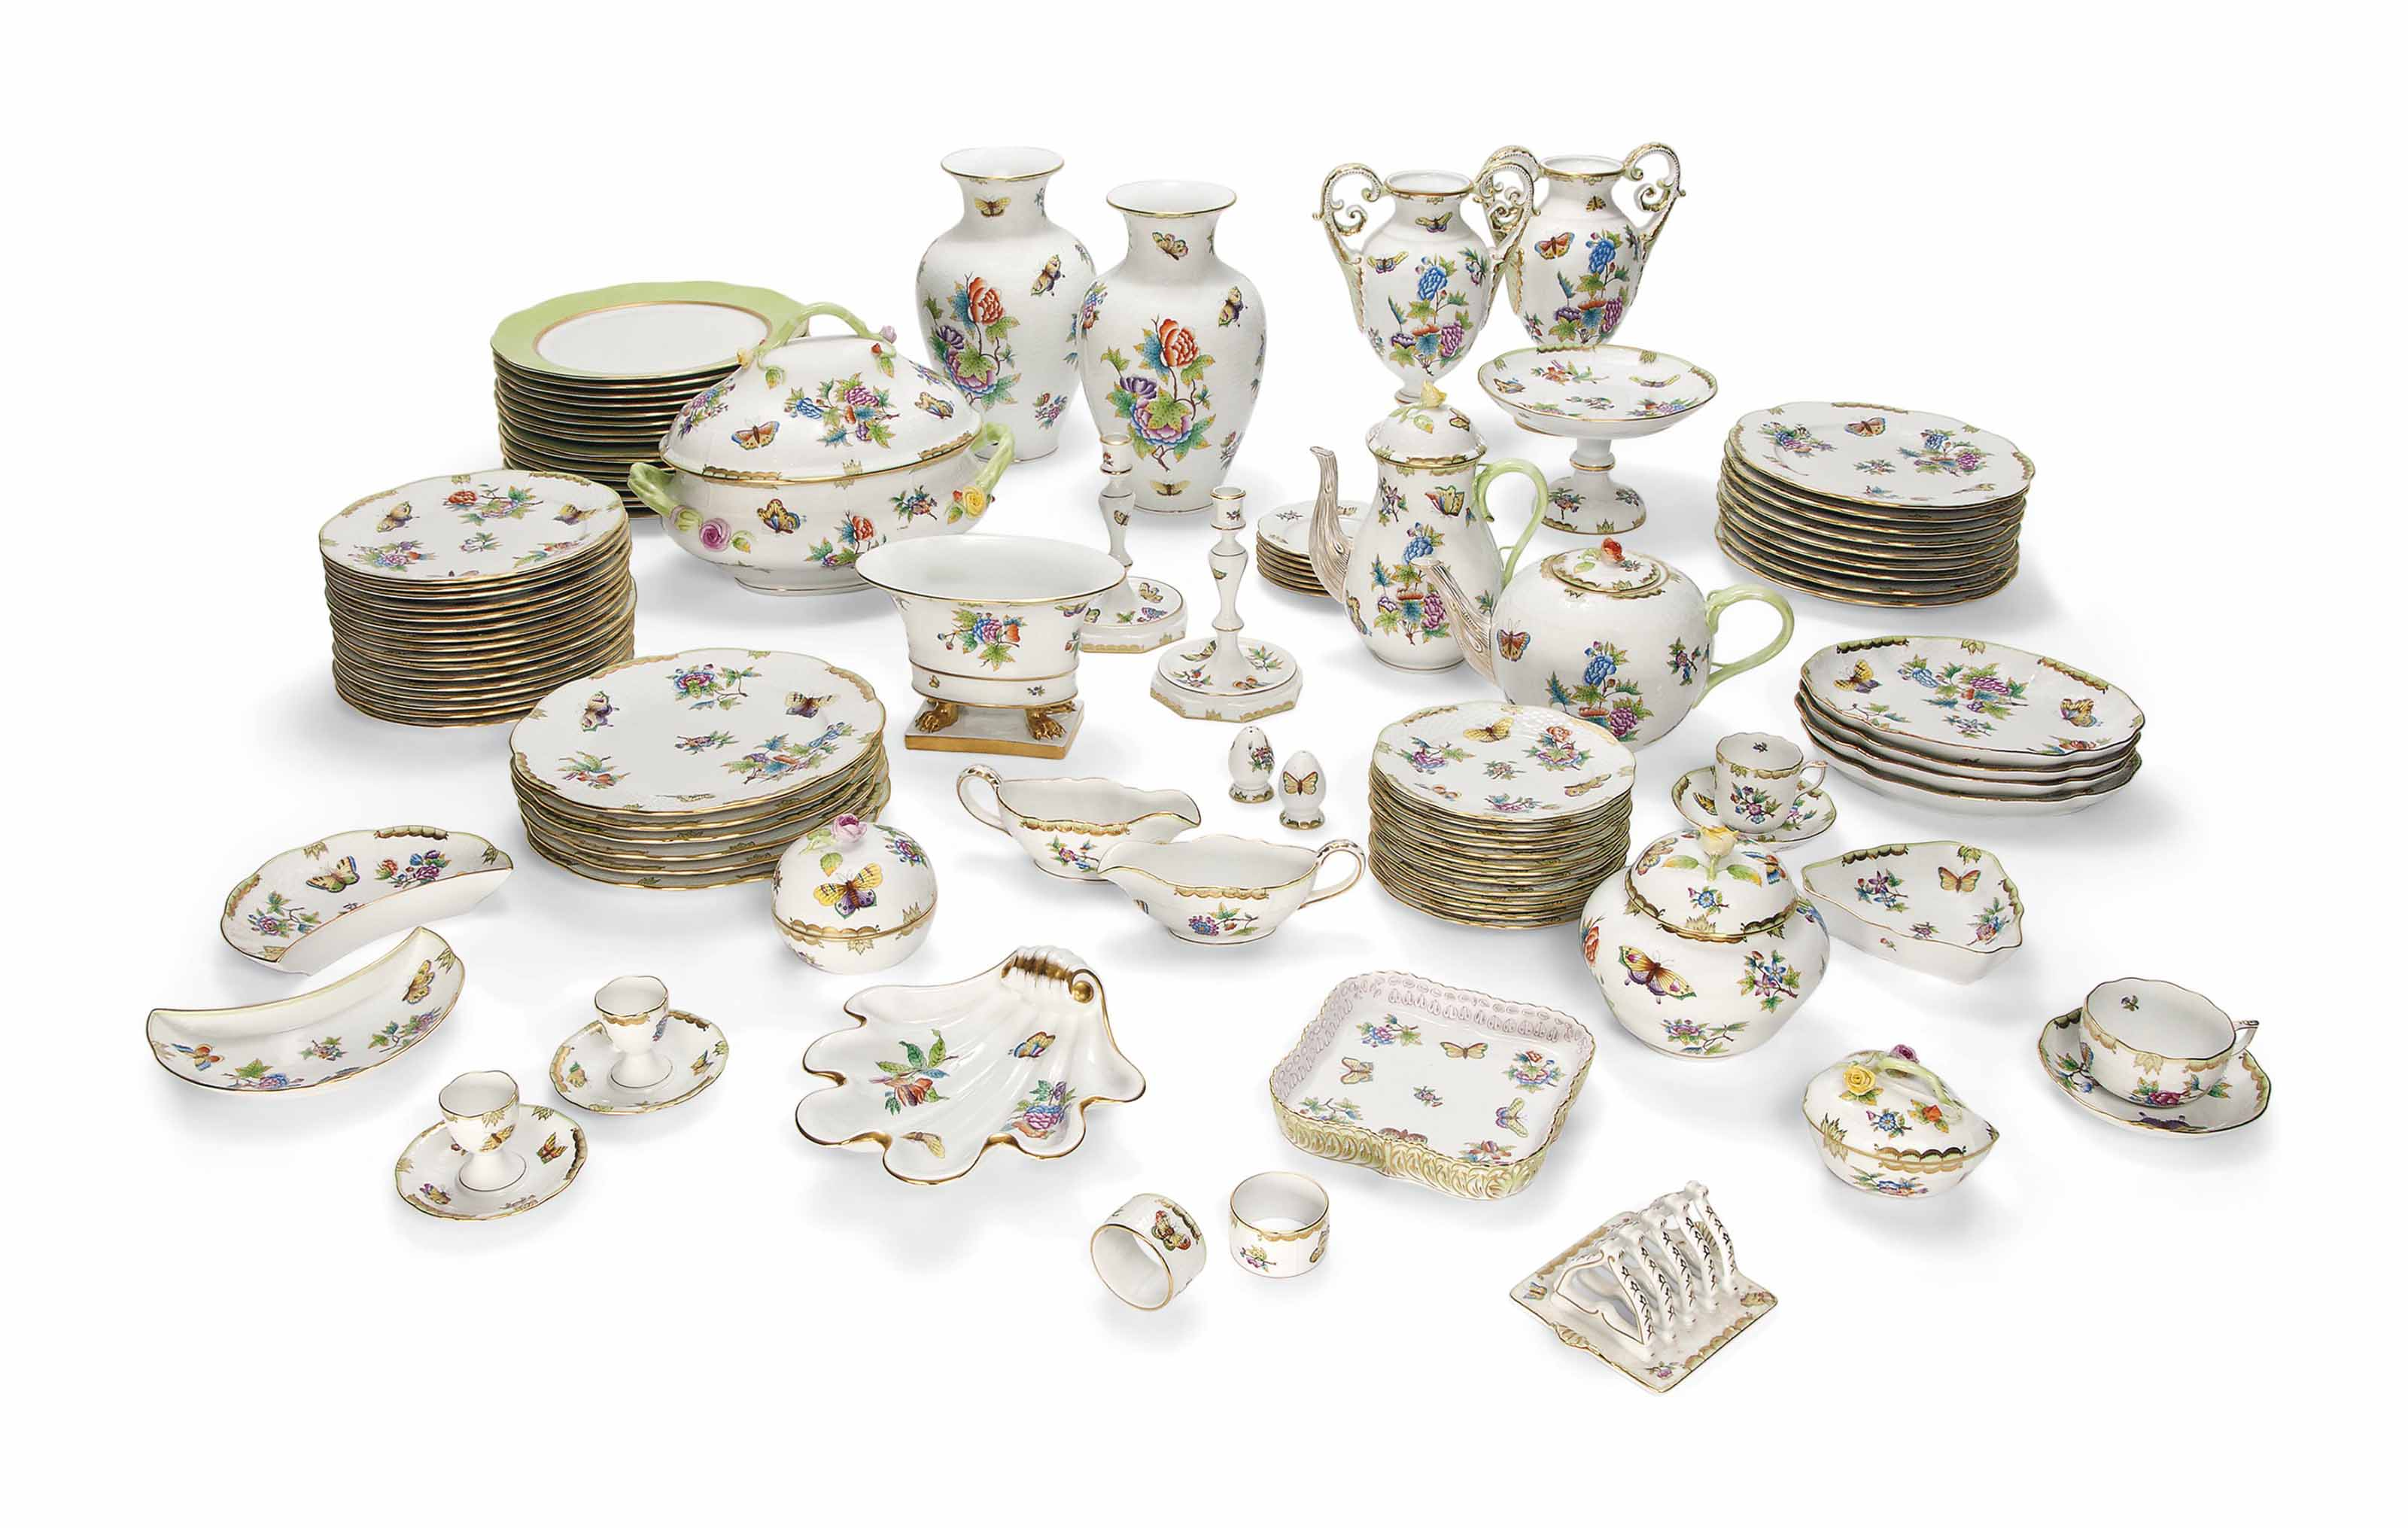 AN EXTENSIVE HEREND 'VICTORIA' PATTERN PART TABLE-SERVICE